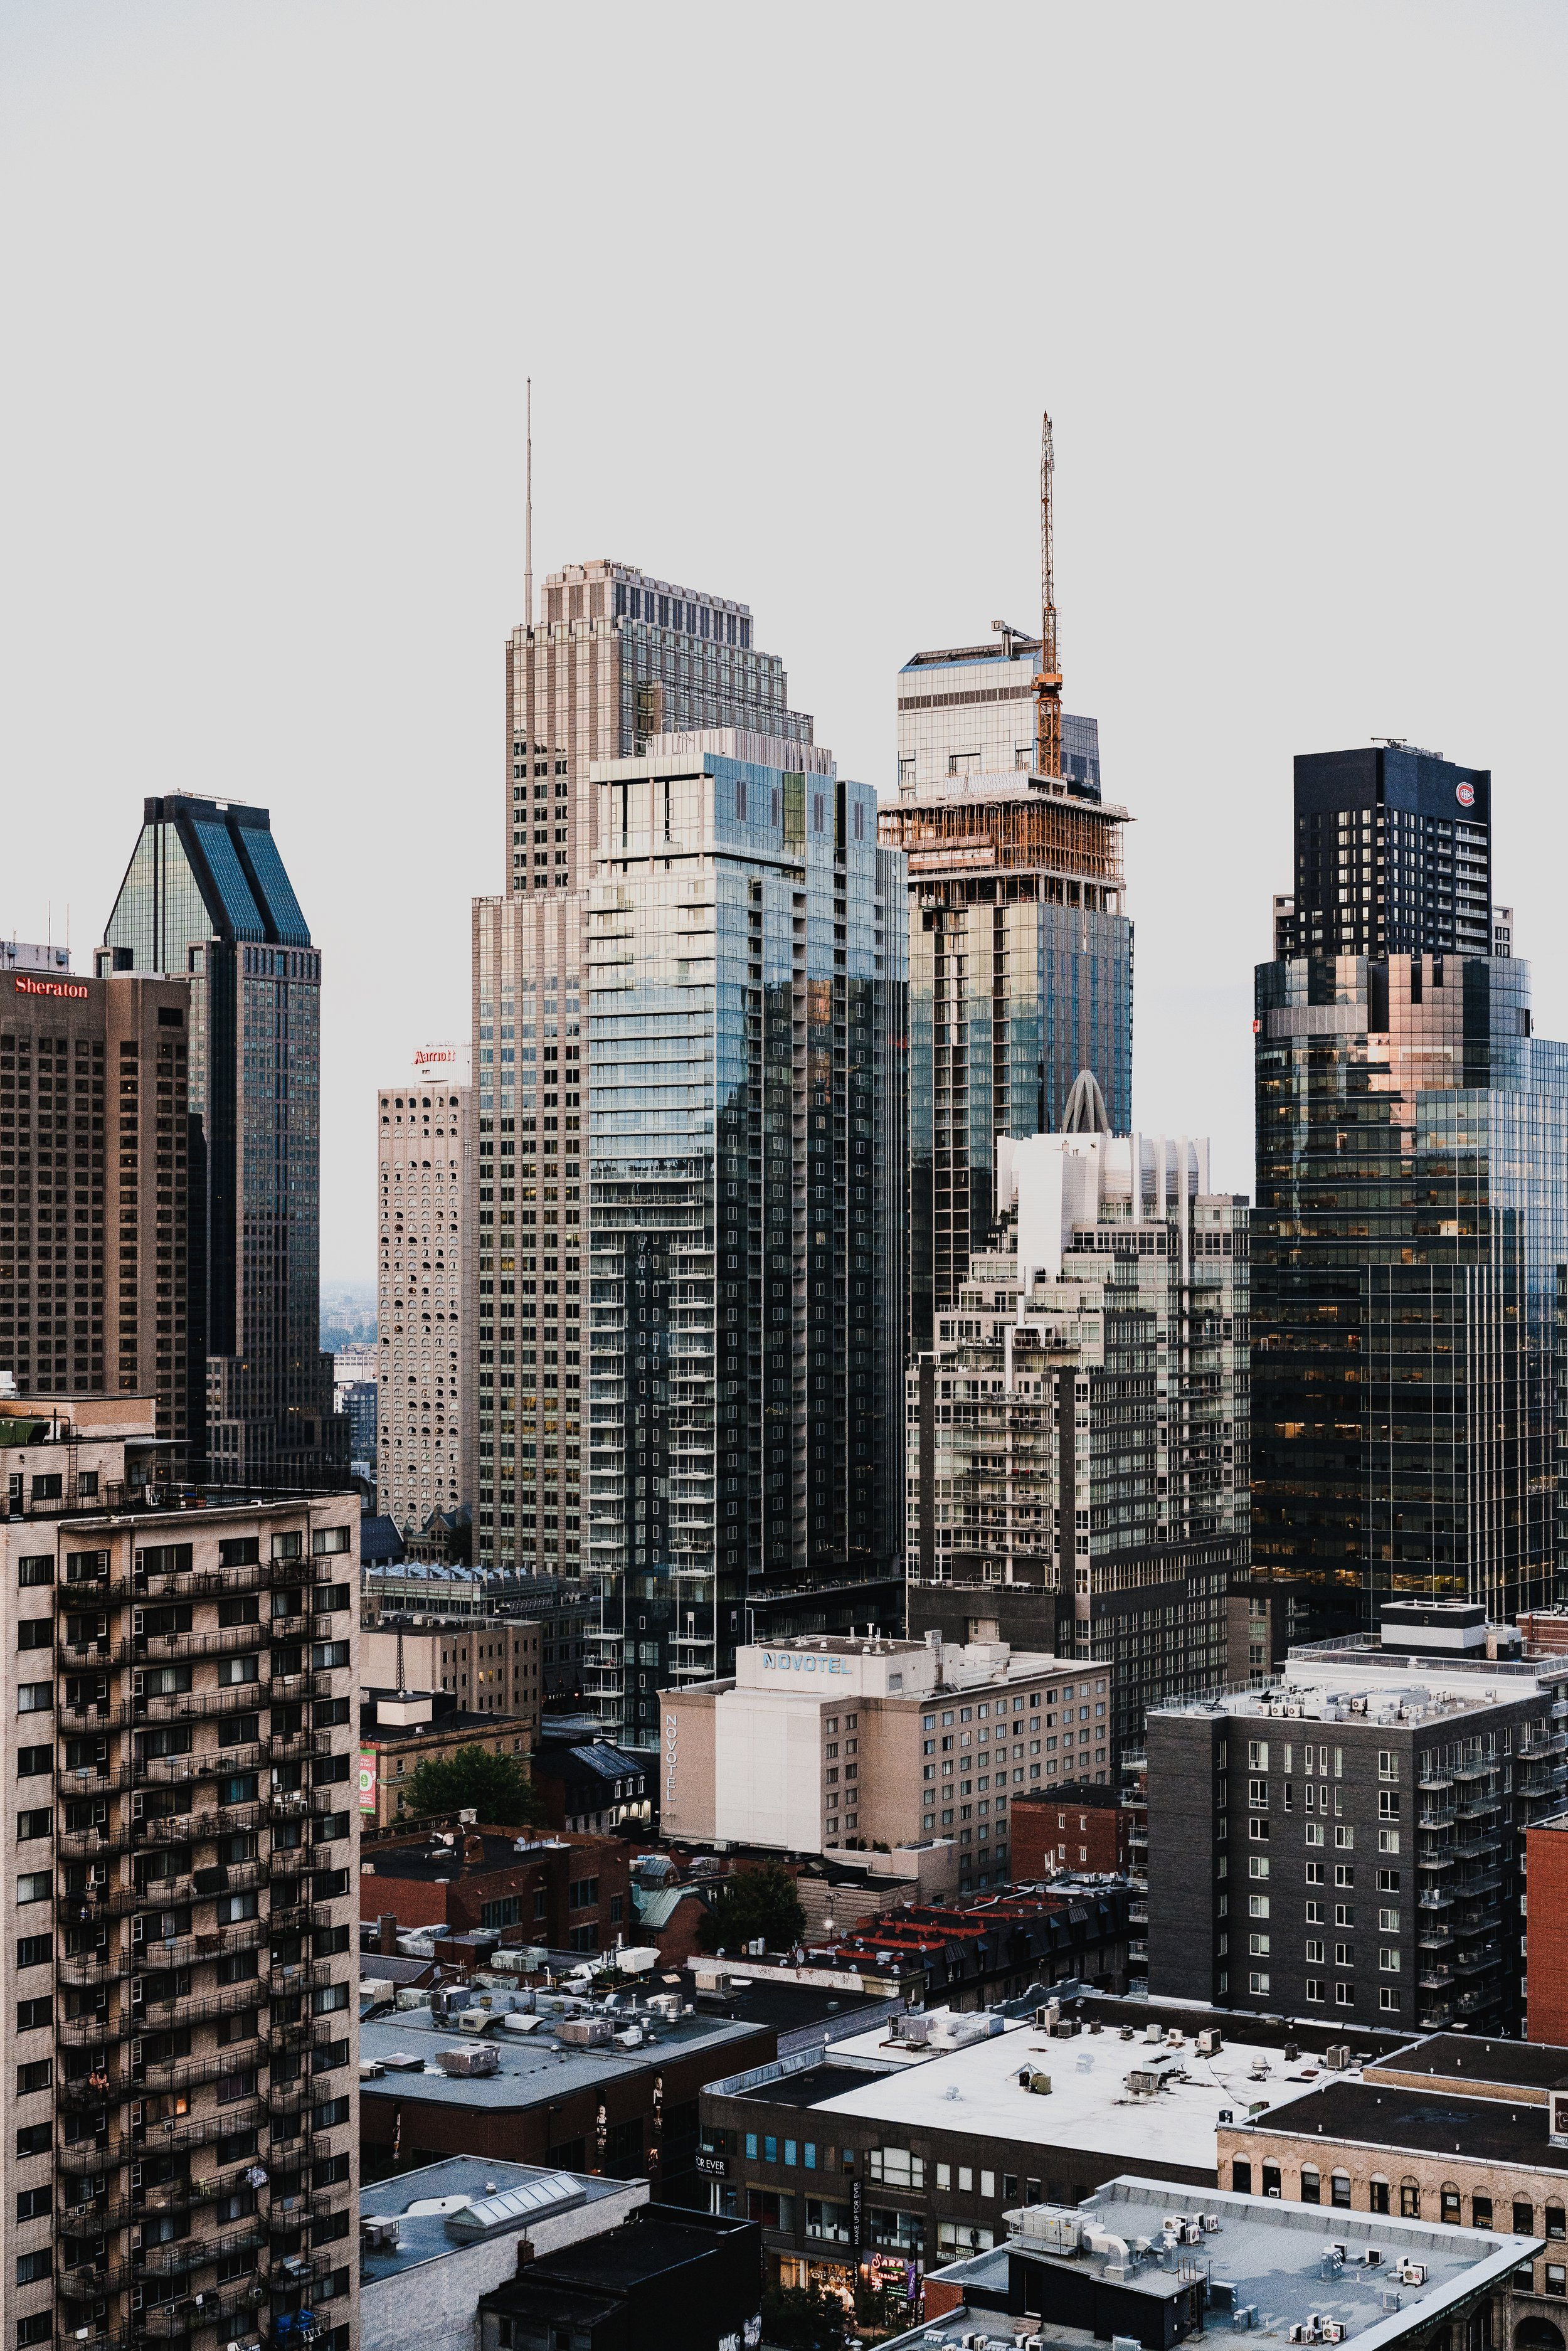 Did you know? - Montreal is a UNESCO City of Design, part of the UNESCO Creative Cities Network. (Other cities include Helsinki, Kobe, Shanghai, Seoul, Graz, Berlin, Nagoya, Saint-Etienne, Buenos Aires and Shenzhen.) Find out more here!